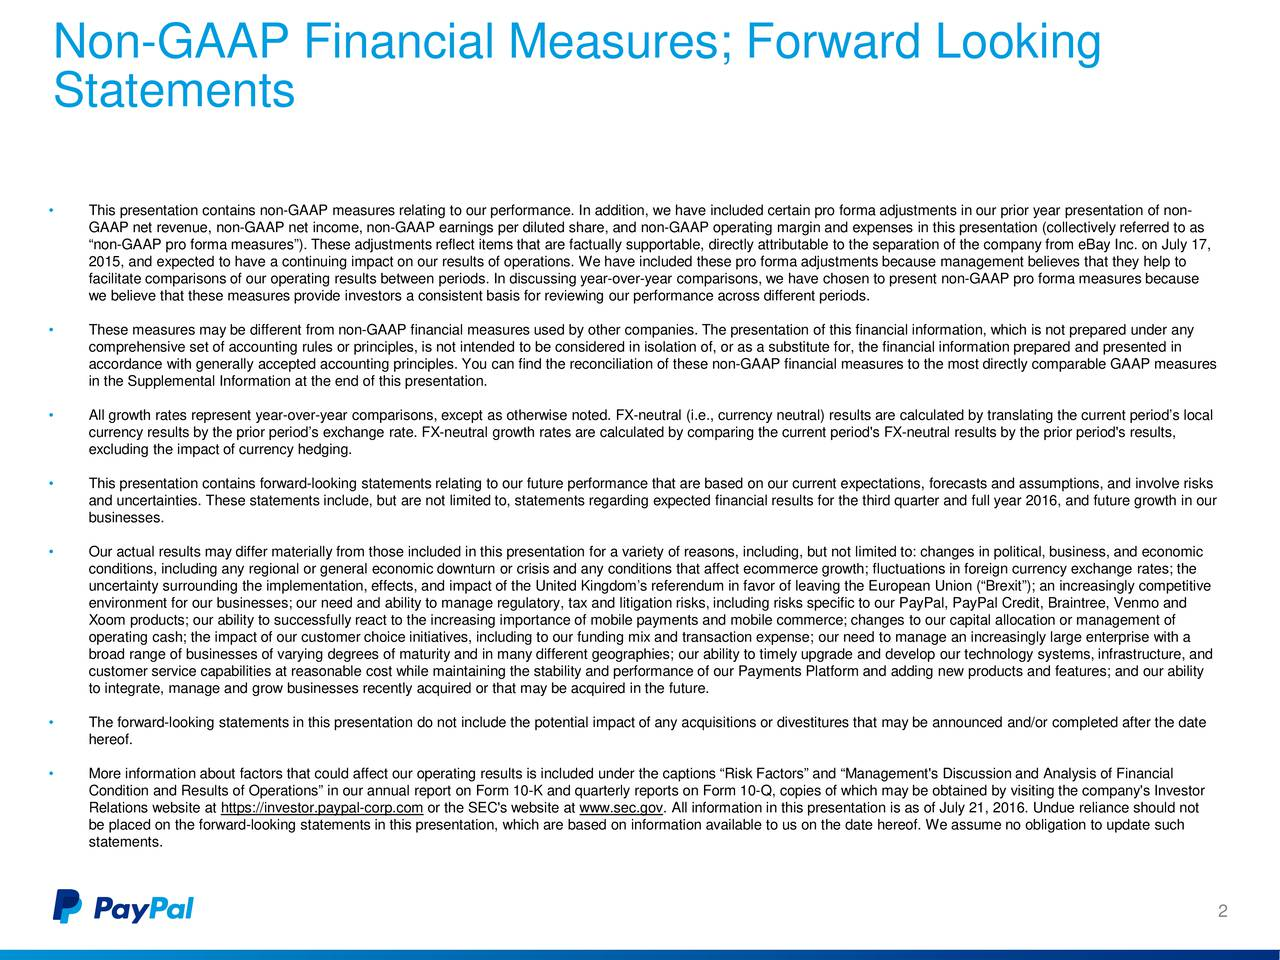 Statements This presentation contains non-GAAP measures relating to our performance. Inaddition, we have included certain pro forma adjustments in our prior year presentation of non- GAAP net revenue, non-GAAP net income, non-GAAP earnings per diluted share, and non-GAAP operating margin and expenses in this presentation (collectively referred to as non-GAAP pro forma measures).These adjustments reflect items that are factually supportable, directly attributable to the separation of the company from eBay Inc.on July 17, 2015, and expected to have a continuing impact on our results of operations. We have included these pro forma adjustments because management believes that they help to facilitate comparisons of our operating results between periods.In discussing year-over-year comparisons, we have chosen to present non-GAAP pro forma measures because we believe that these measures provide investors a consistent basis for reviewing our performance across different periods. These measures may be different from non-GAAP financial measures used by other companies. The presentation of this financial information, which is not prepared under any comprehensive set of accounting rules or principles, is not intended to be considered in isolation of, or as a substitute for, the financial information prepared and presented in accordance with generally accepted accounting principles. You can find the reconciliation of these non-GAAP financial measures to the most directly comparable GAAP measures in the Supplemental Information at the end of this presentation. All growth rates represent year-over-year comparisons, except as otherwise noted. FX-neutral (i.e., currency neutral) results are calculated by translating the current periods local currency results by the prior periods exchange rate. FX-neutral growth rates are calculated by comparing the current period's FX-neutral results by the prior period's results, excluding the impact of currency hedging. This presentation contains 